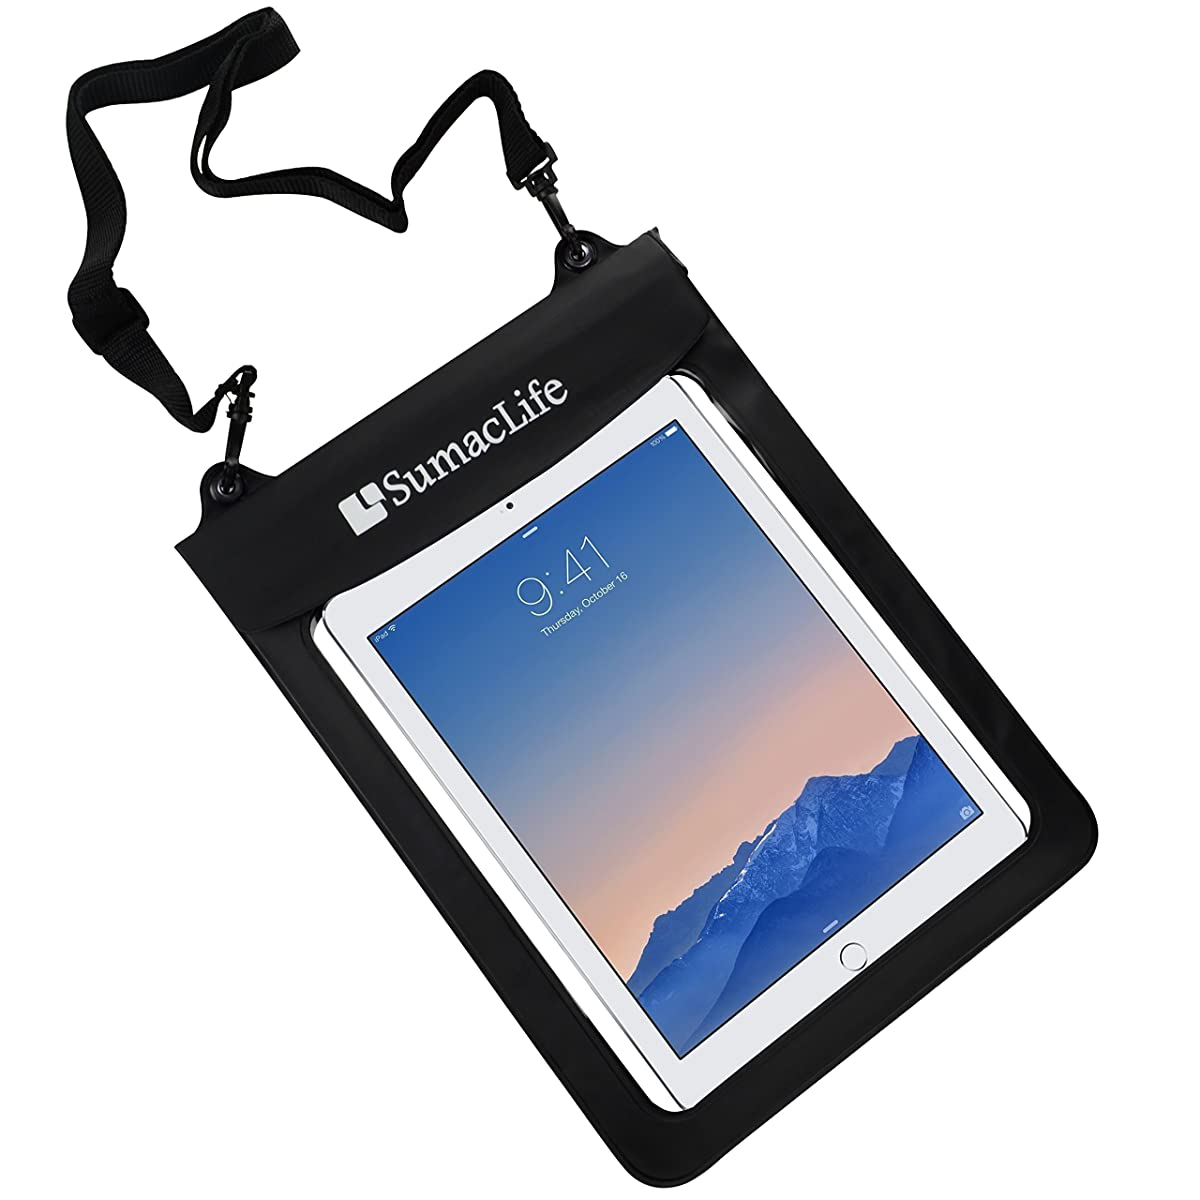 Sumaclife Waterproof Pouch Dry Bag Case For iPad Air 2 / iPad with Retina Display / IRULU Window 8.1 OS Tablet, 10.1'' / Dragon Touch A1X Plus 10.1